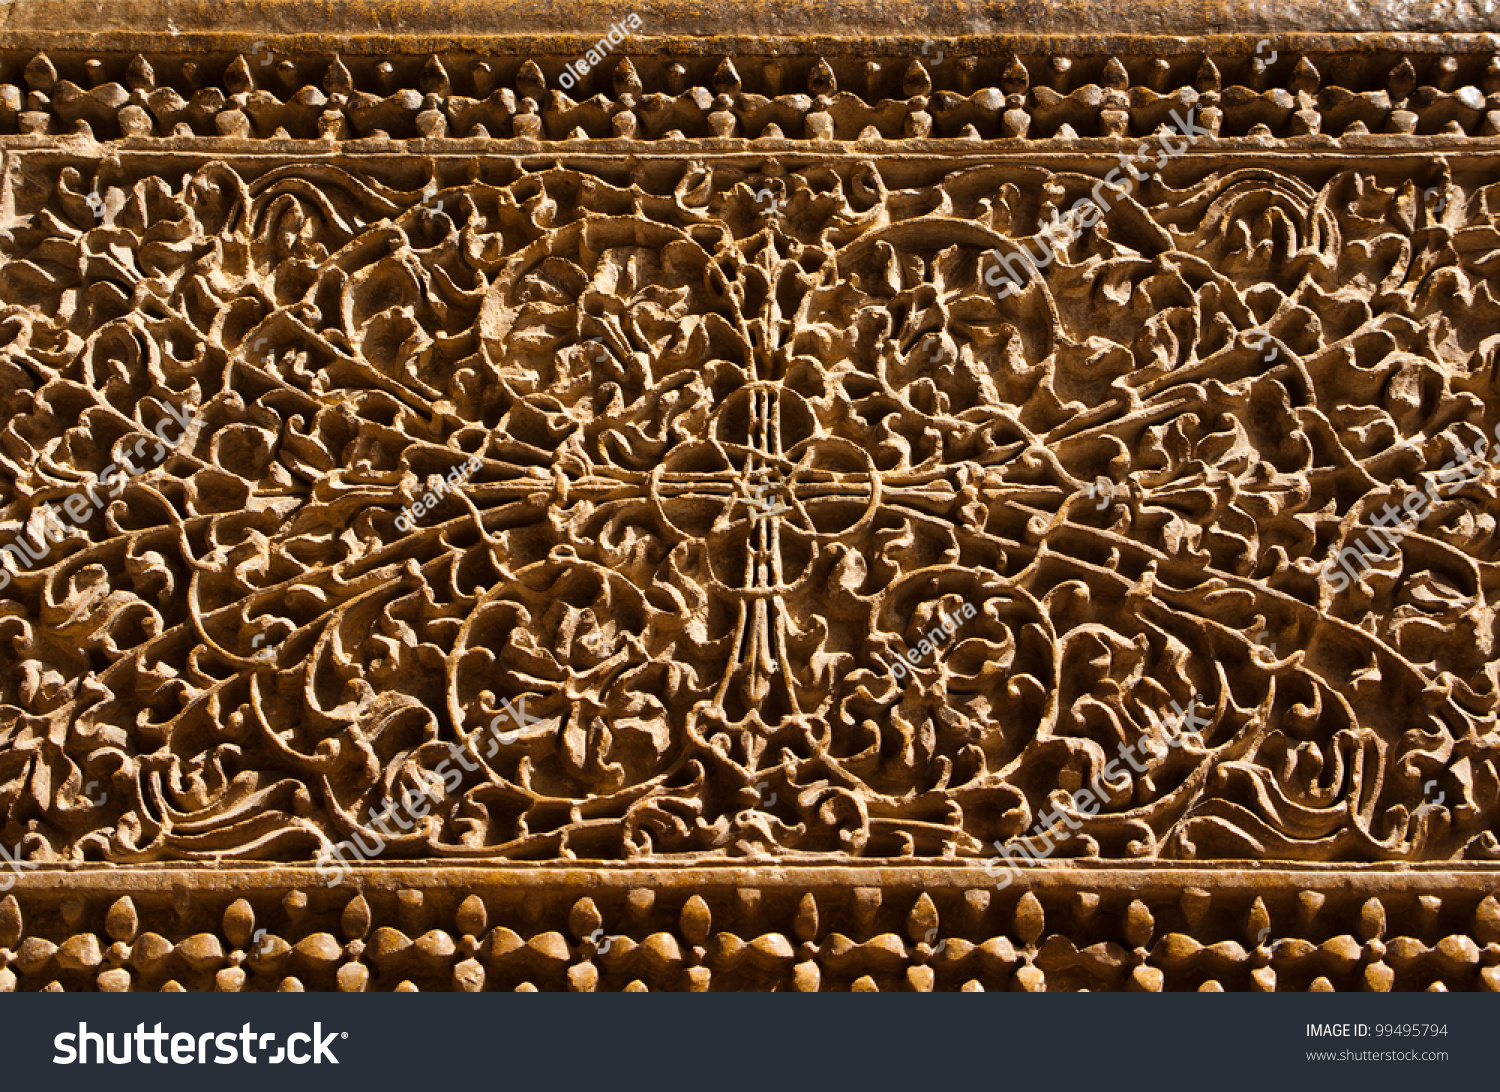 Indian wall carvings stock photo shutterstock